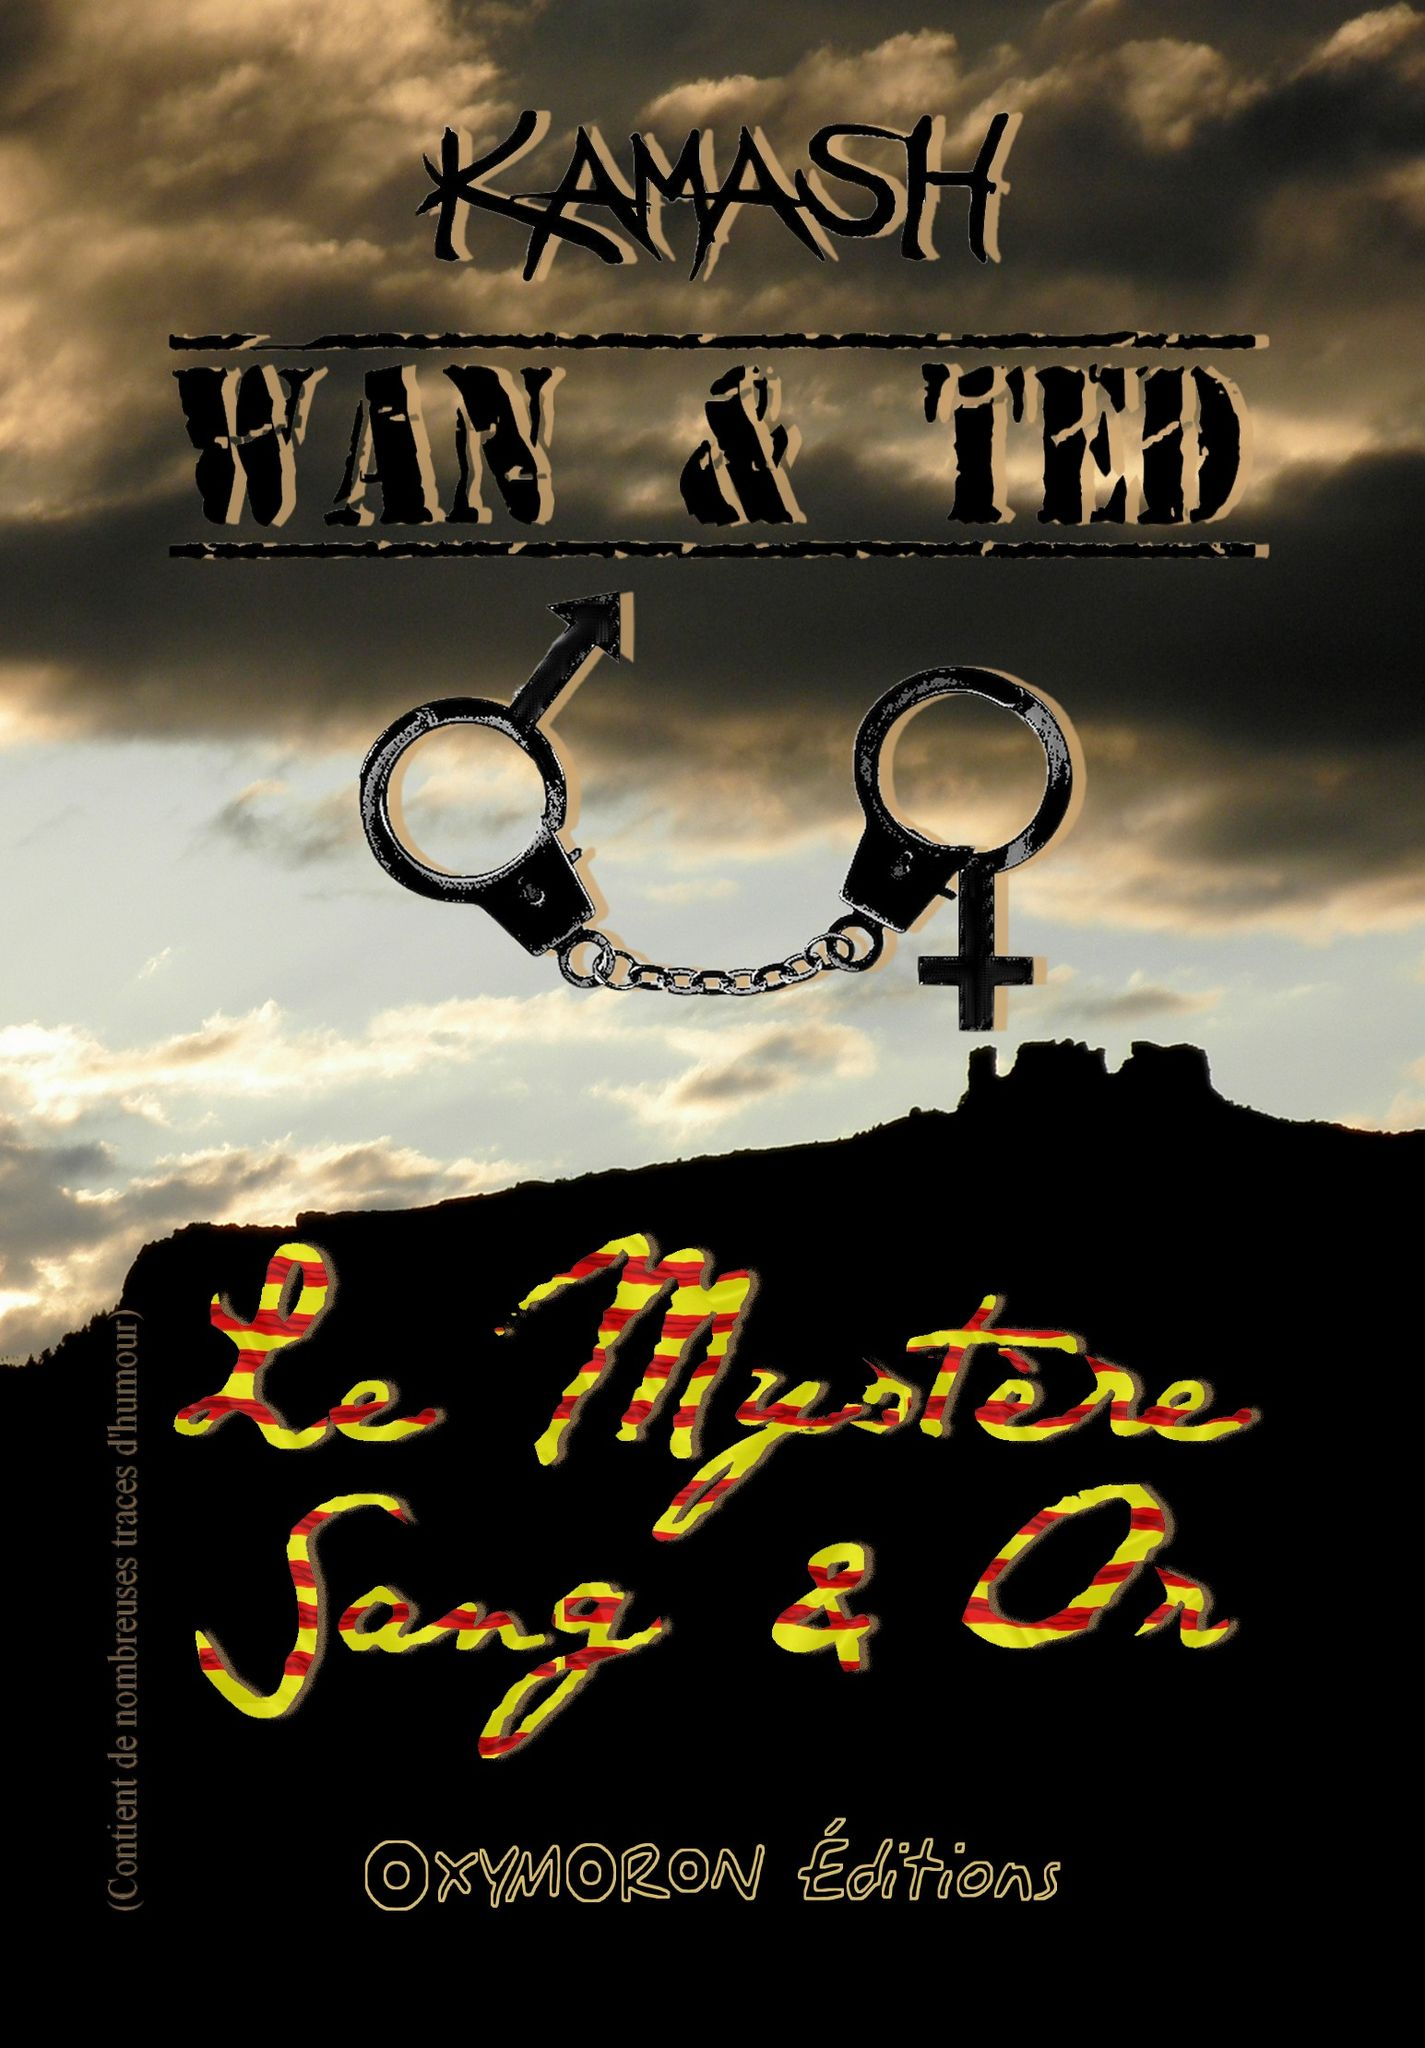 Wan & Ted - Le Mystère Sang & Or